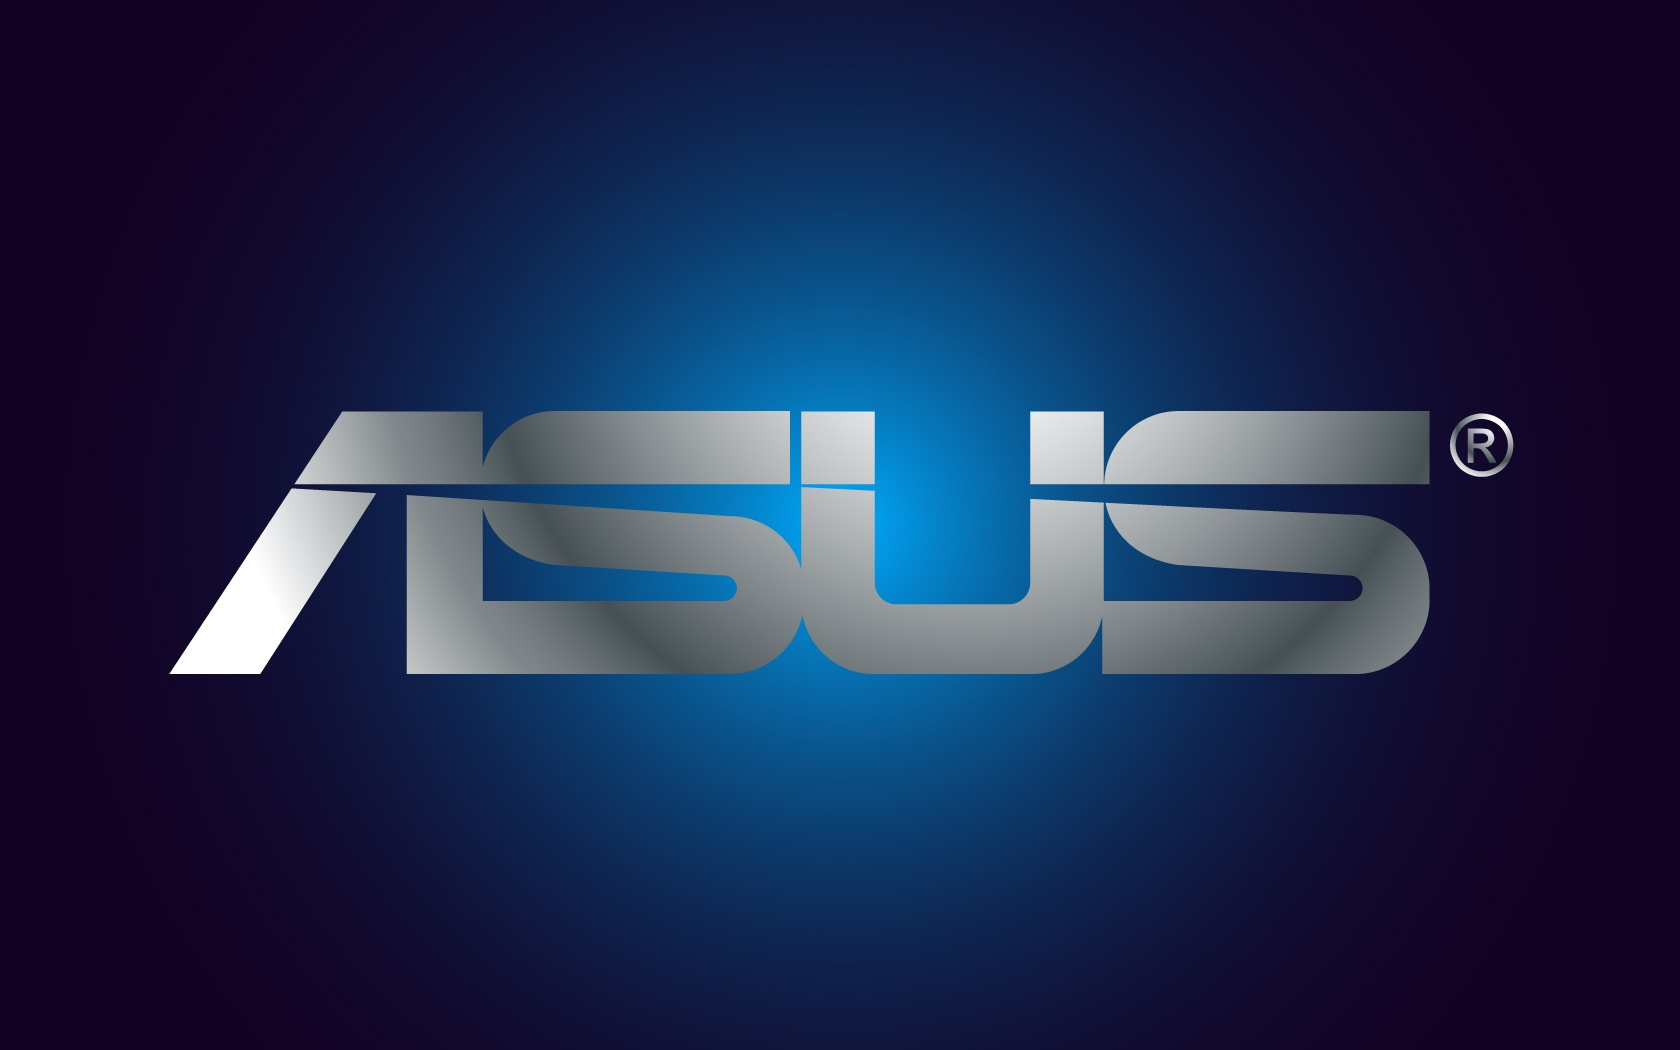 ASUS To Release ZenFone 4 Pro Featuring High-end Flagship